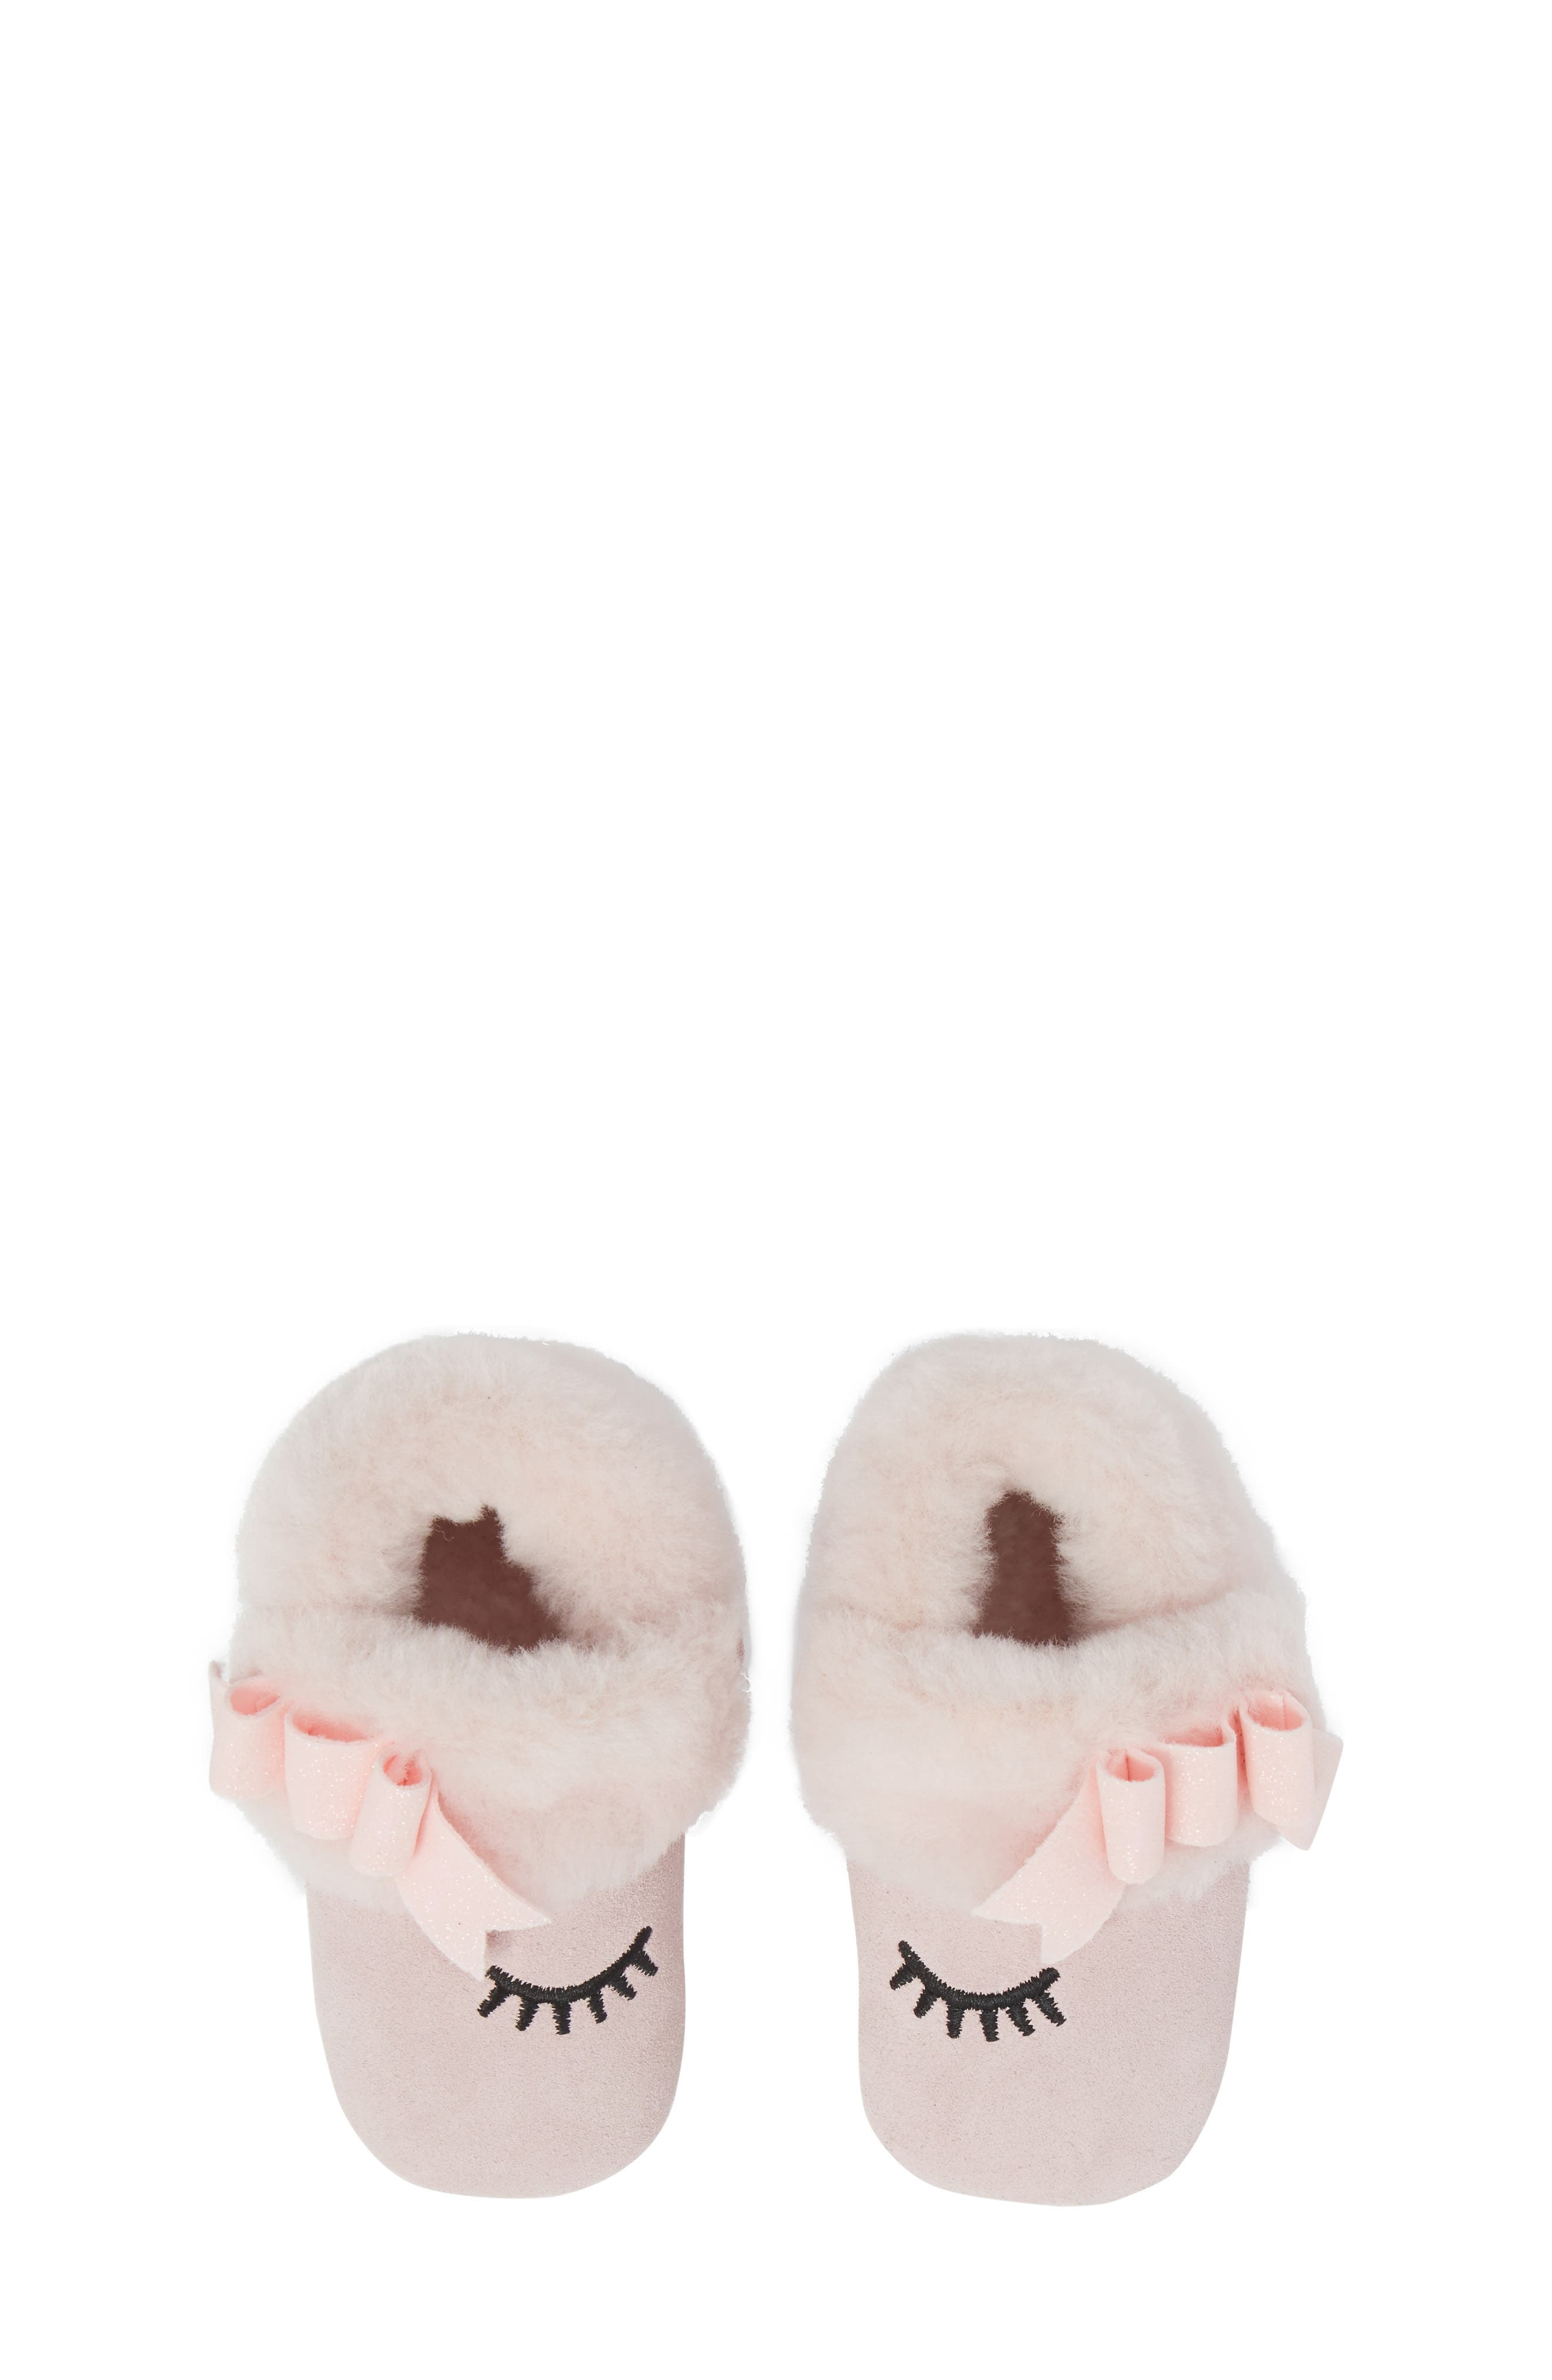 Blinxie Genuine Shearling Bootie,                         Main,                         color, Seashell Pink